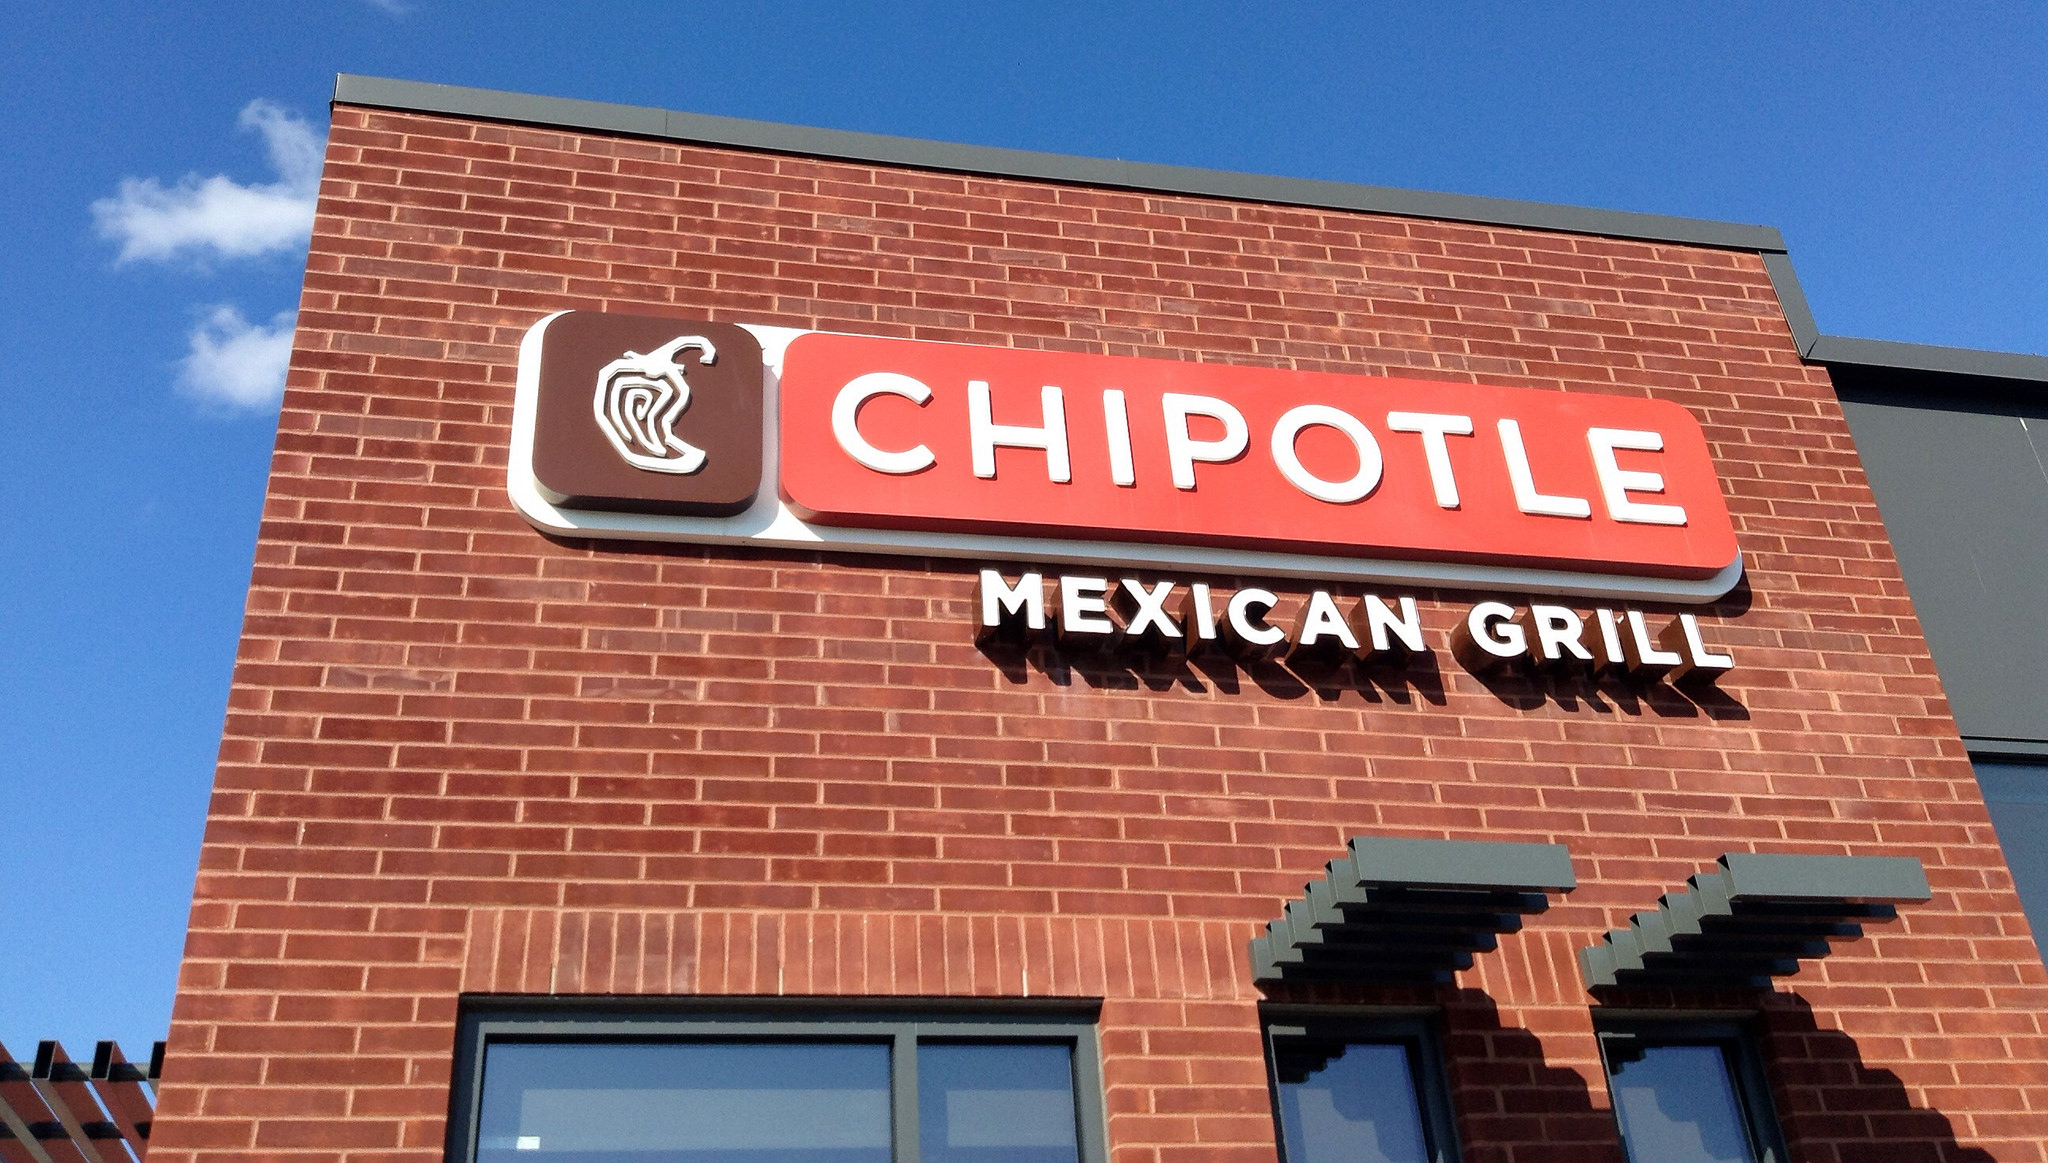 CDC Using DNA Testing to Find Source of Chipotle's E. Coli Outbreak